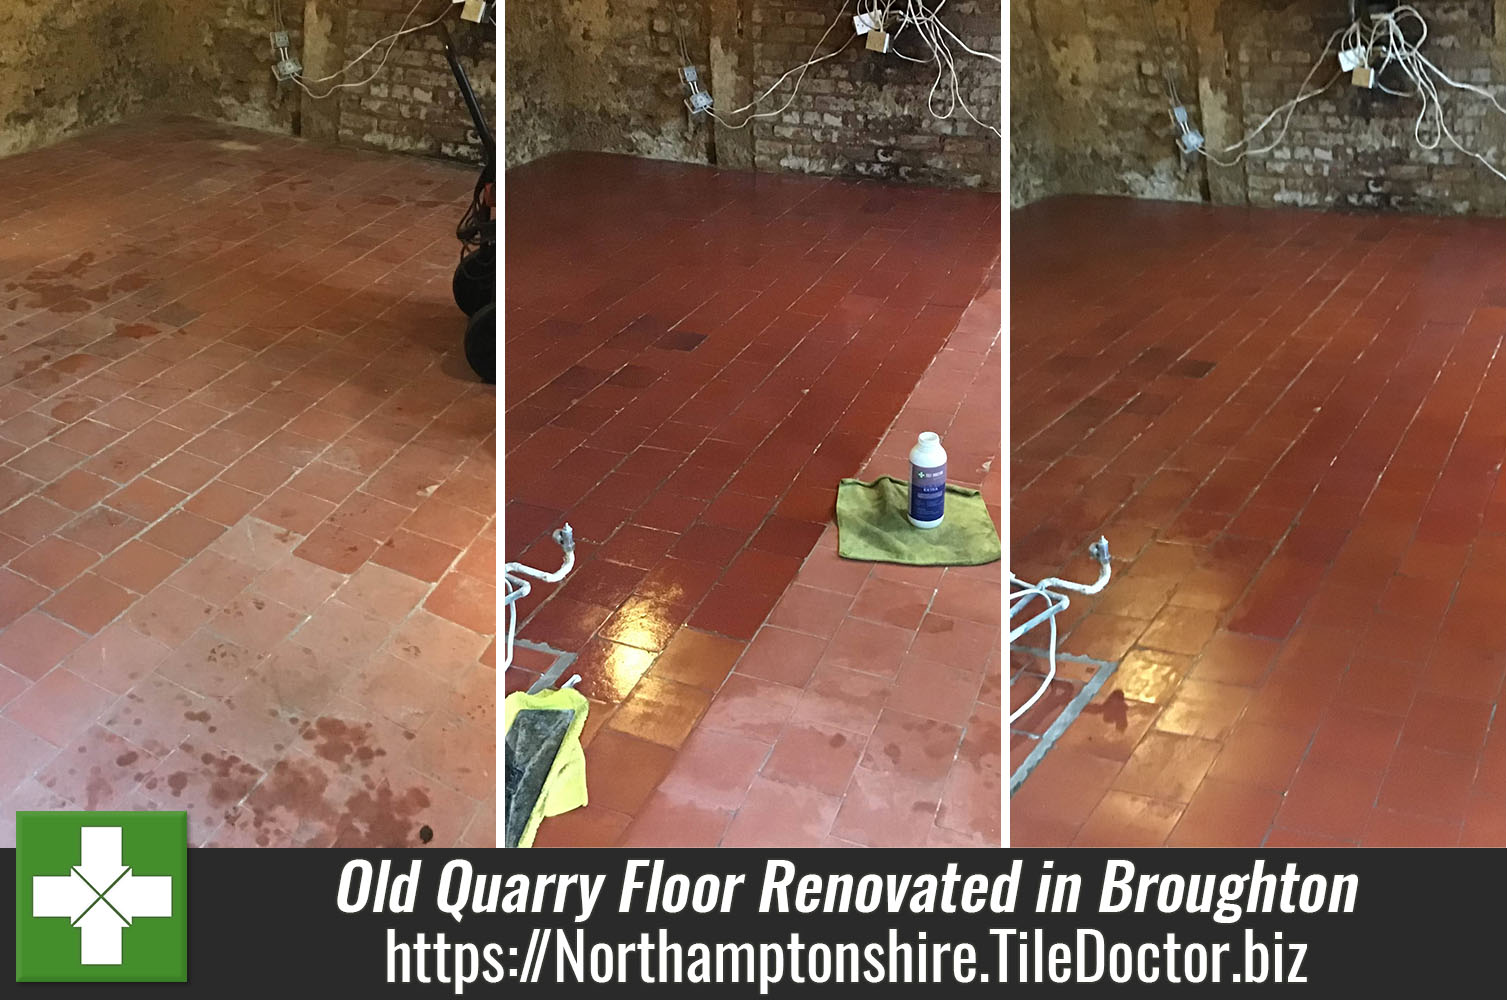 Quarry Tiled Floor Restored Following Cottage Remodel in Broughton Village